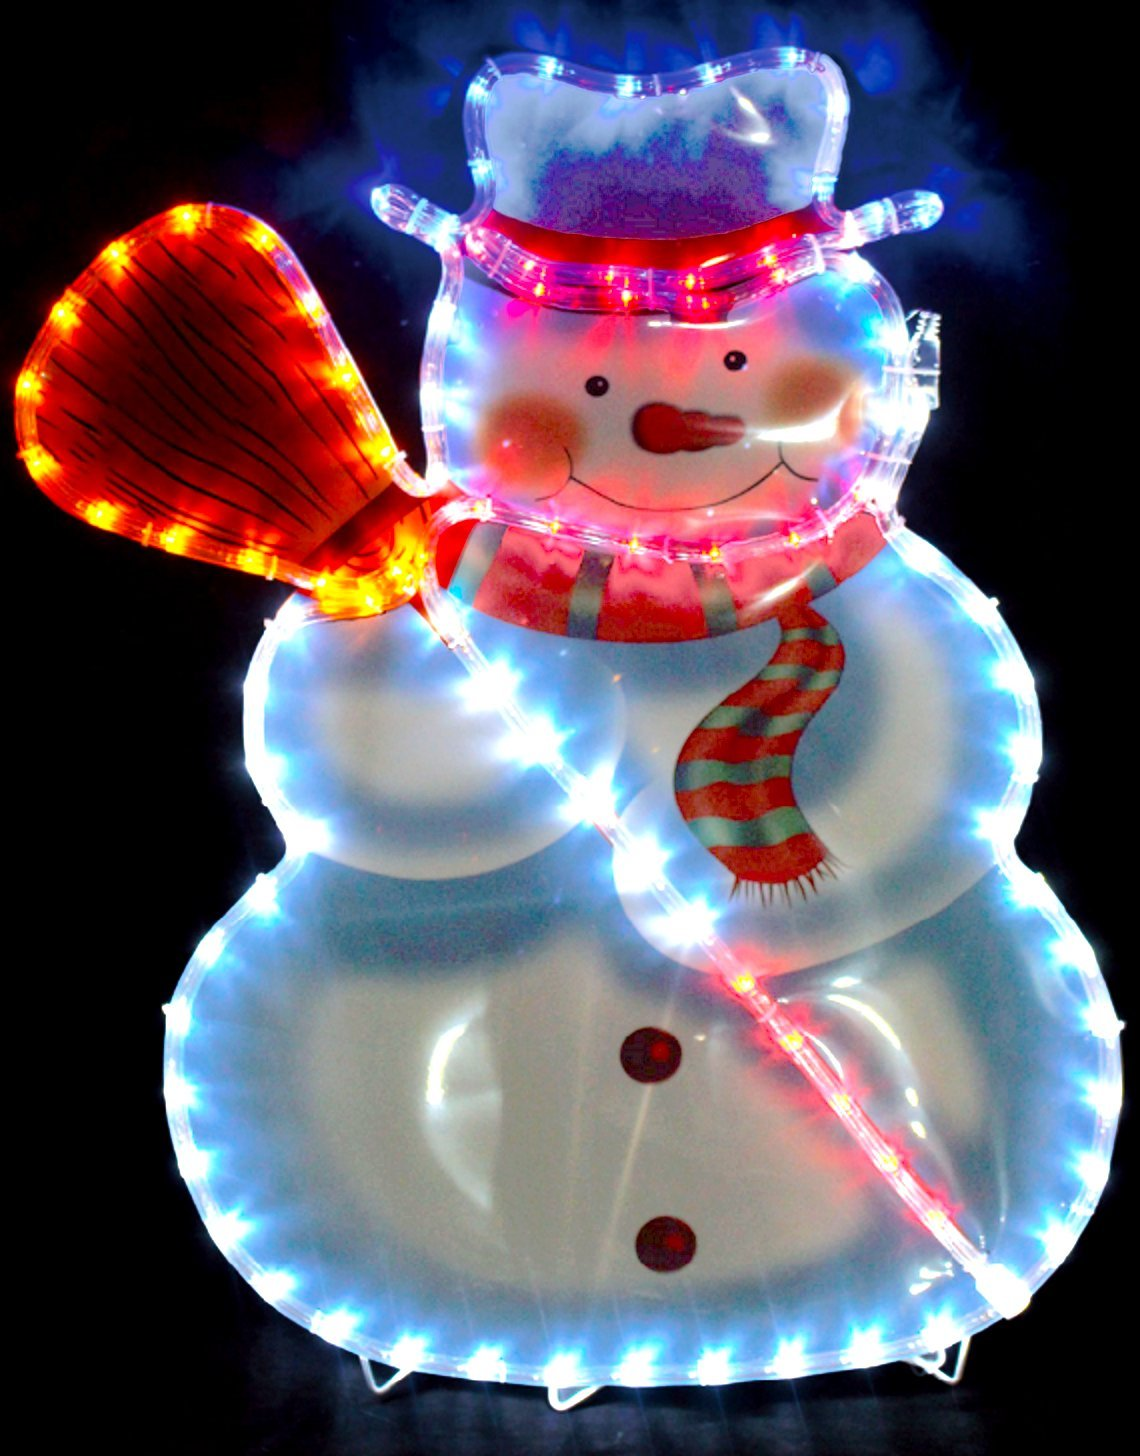 Snow Man Christmas 74 x 51cm Rope Light LED Indoors & Outdoors Festive Large Decoration Quickdraw